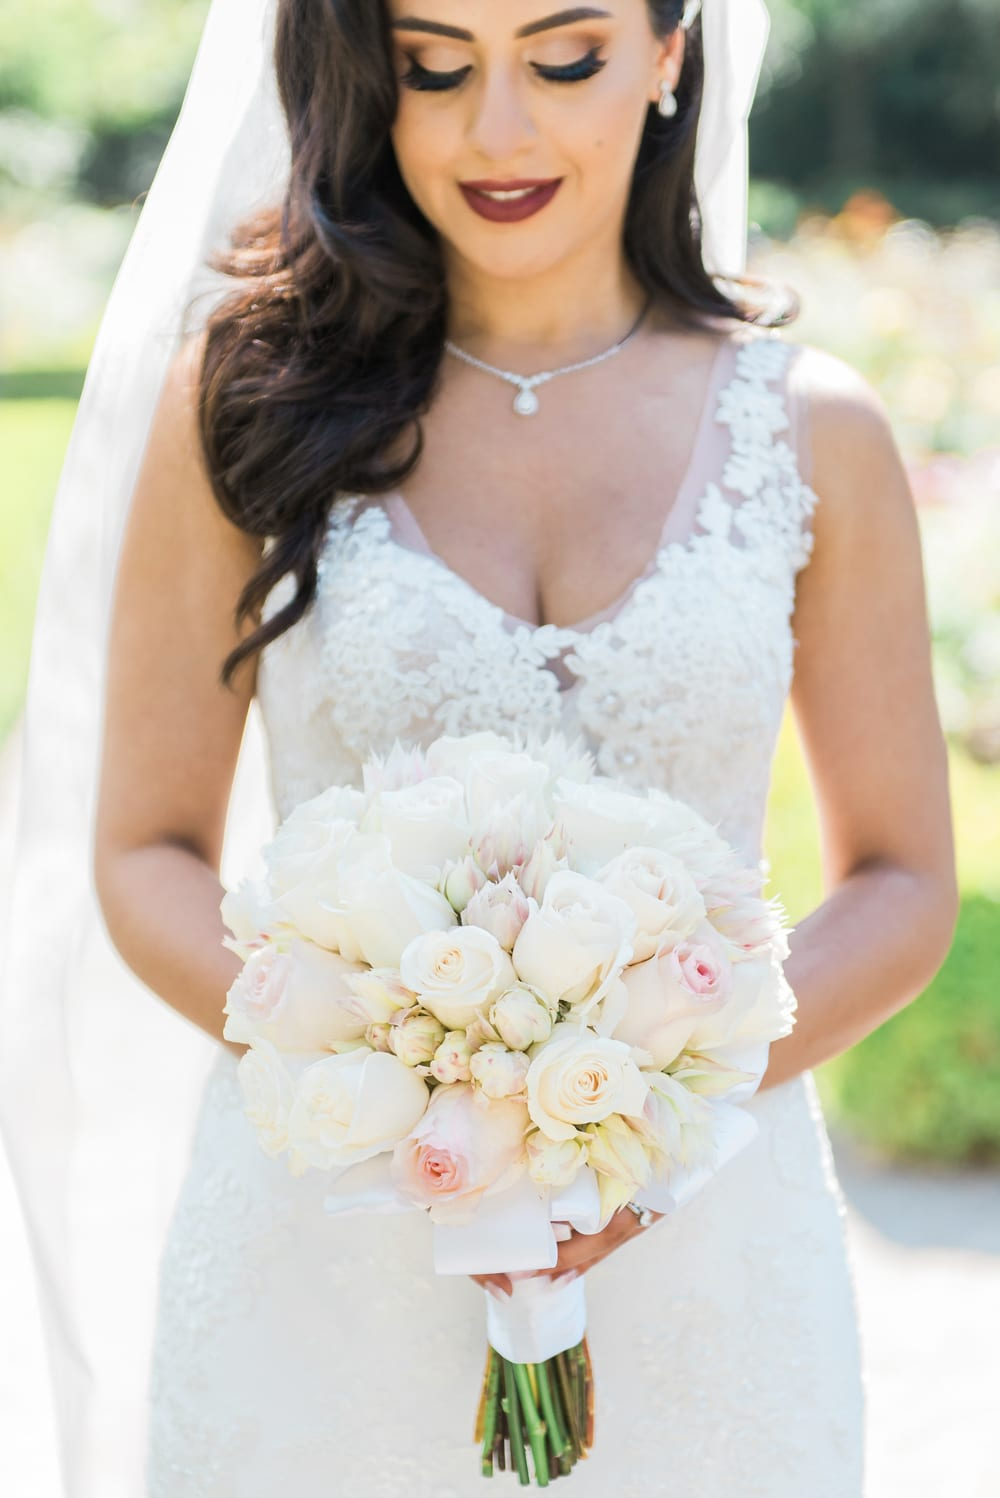 A Vintage Persian Wedding in Vancouver - Bouquet